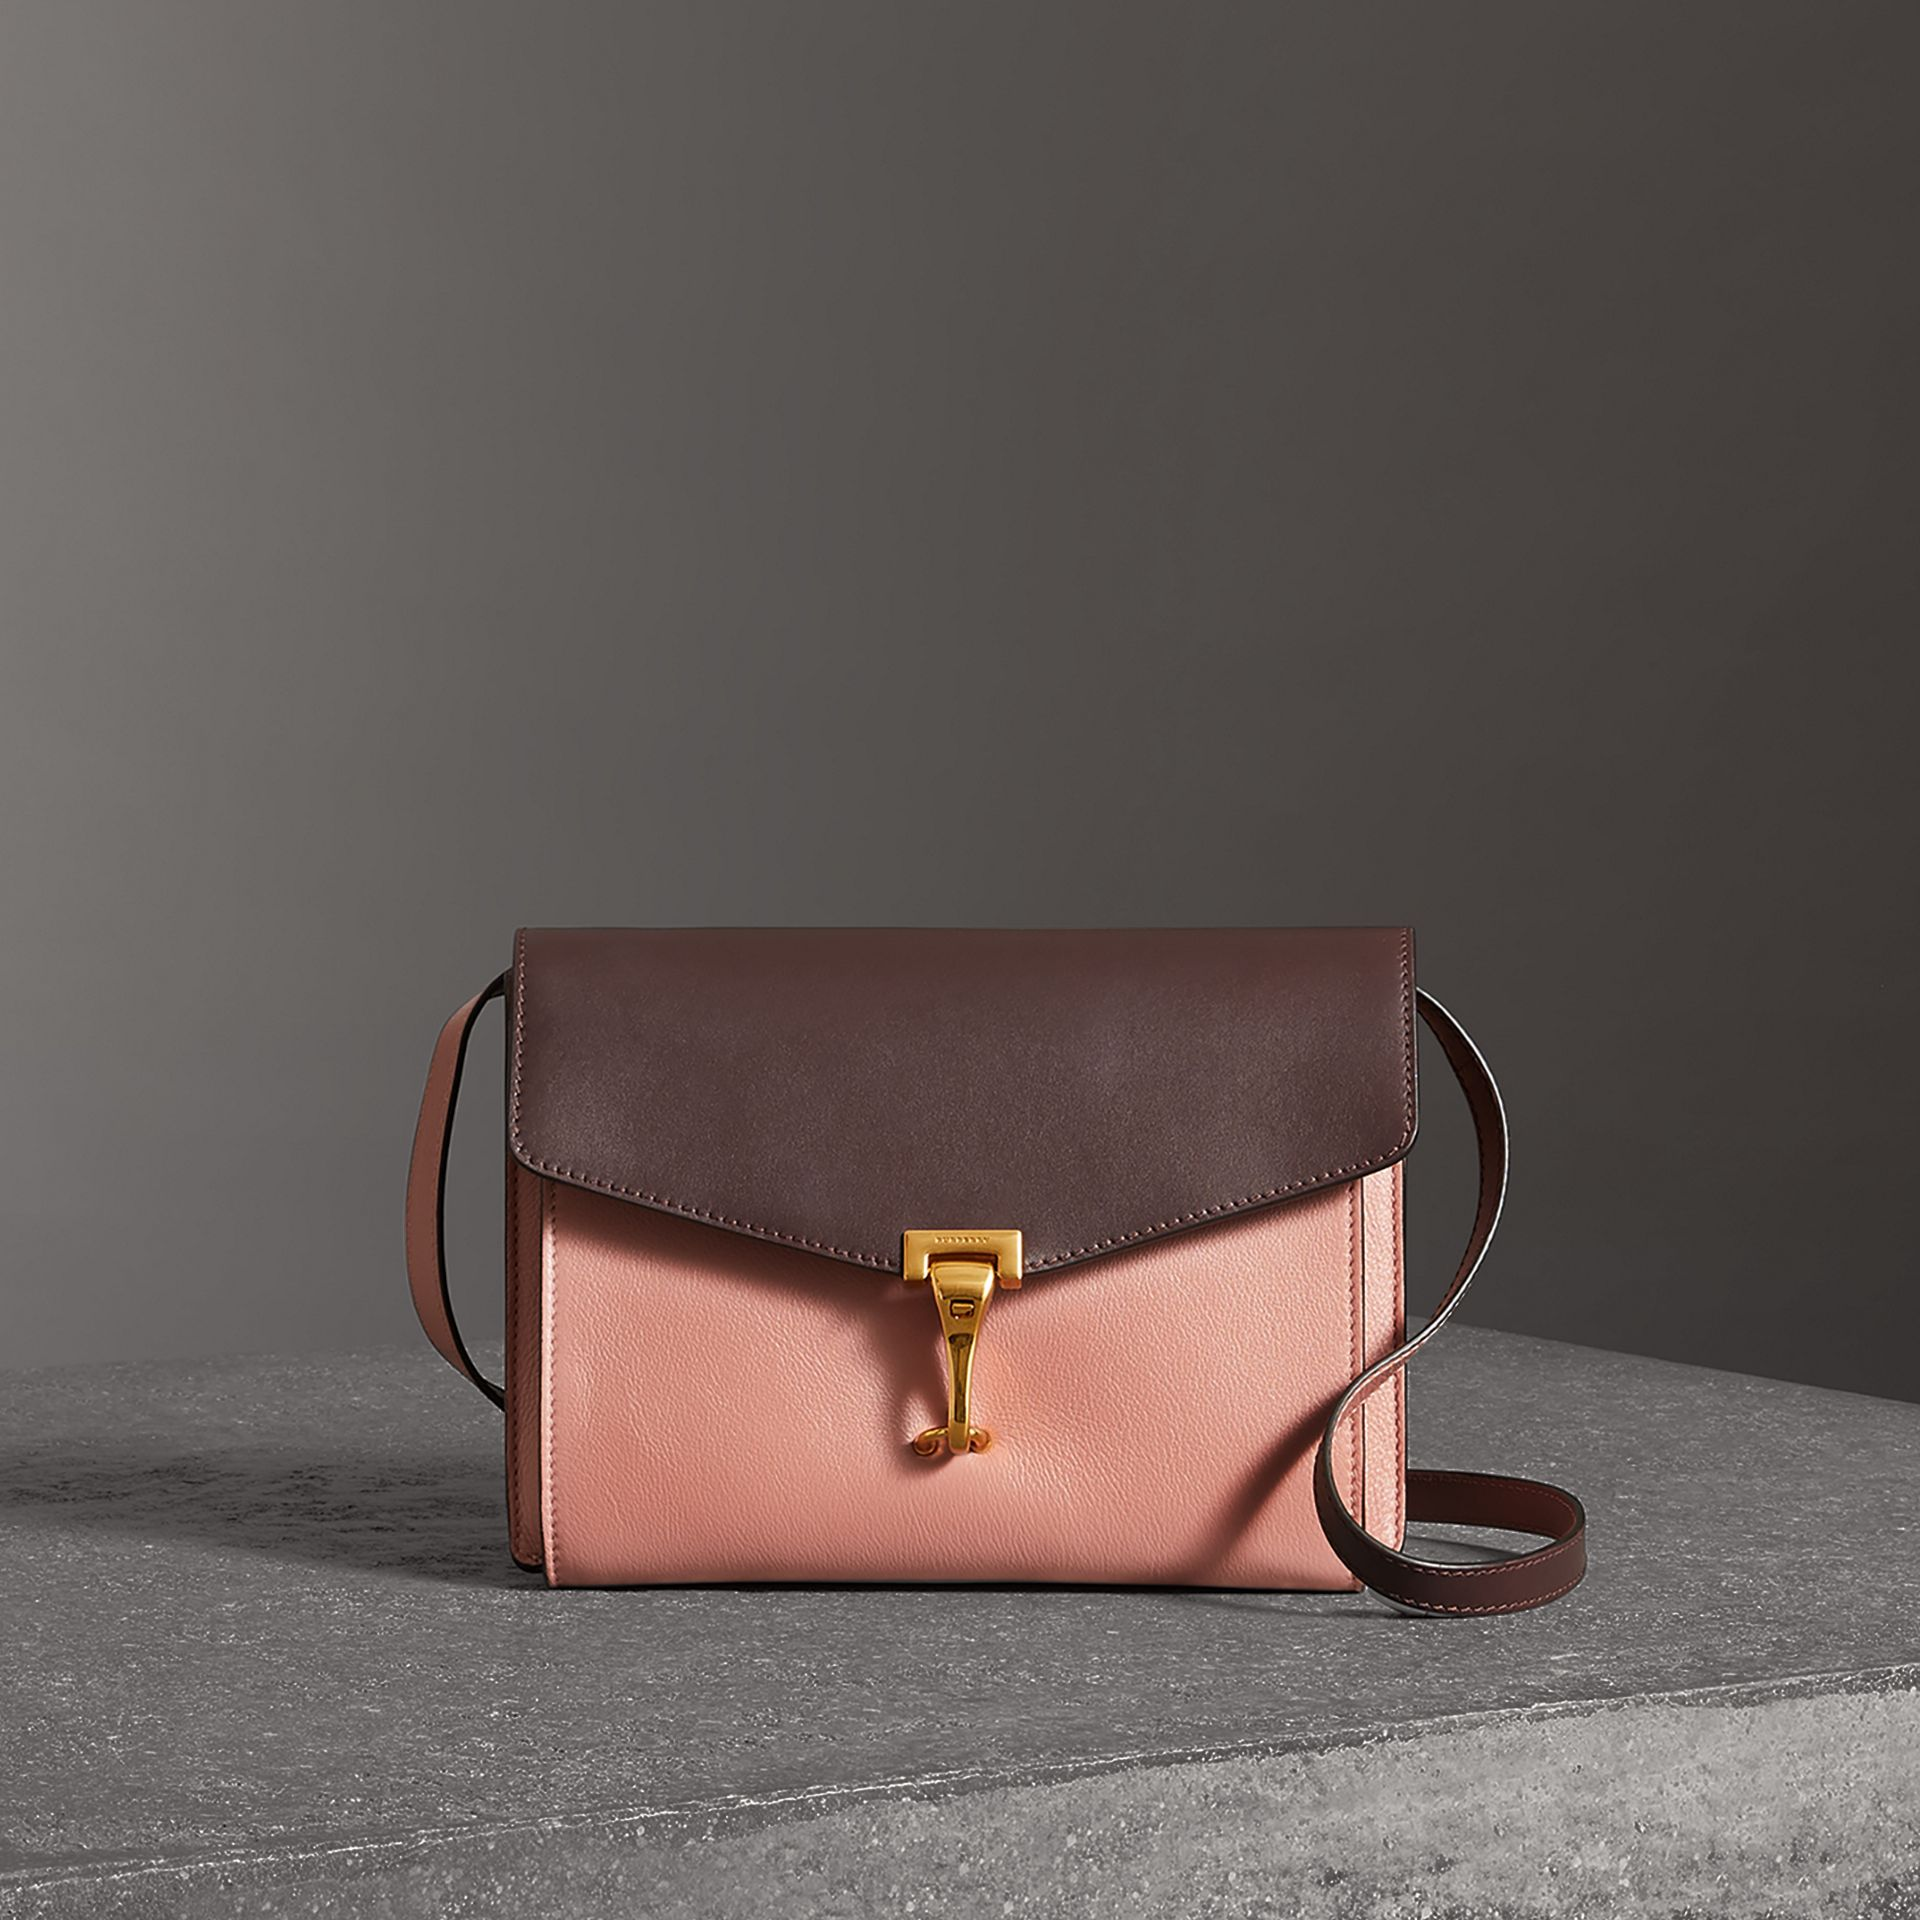 Two-tone Leather Crossbody Bag in Dusty Rose/deep Claret - Women | Burberry Australia - gallery image 0